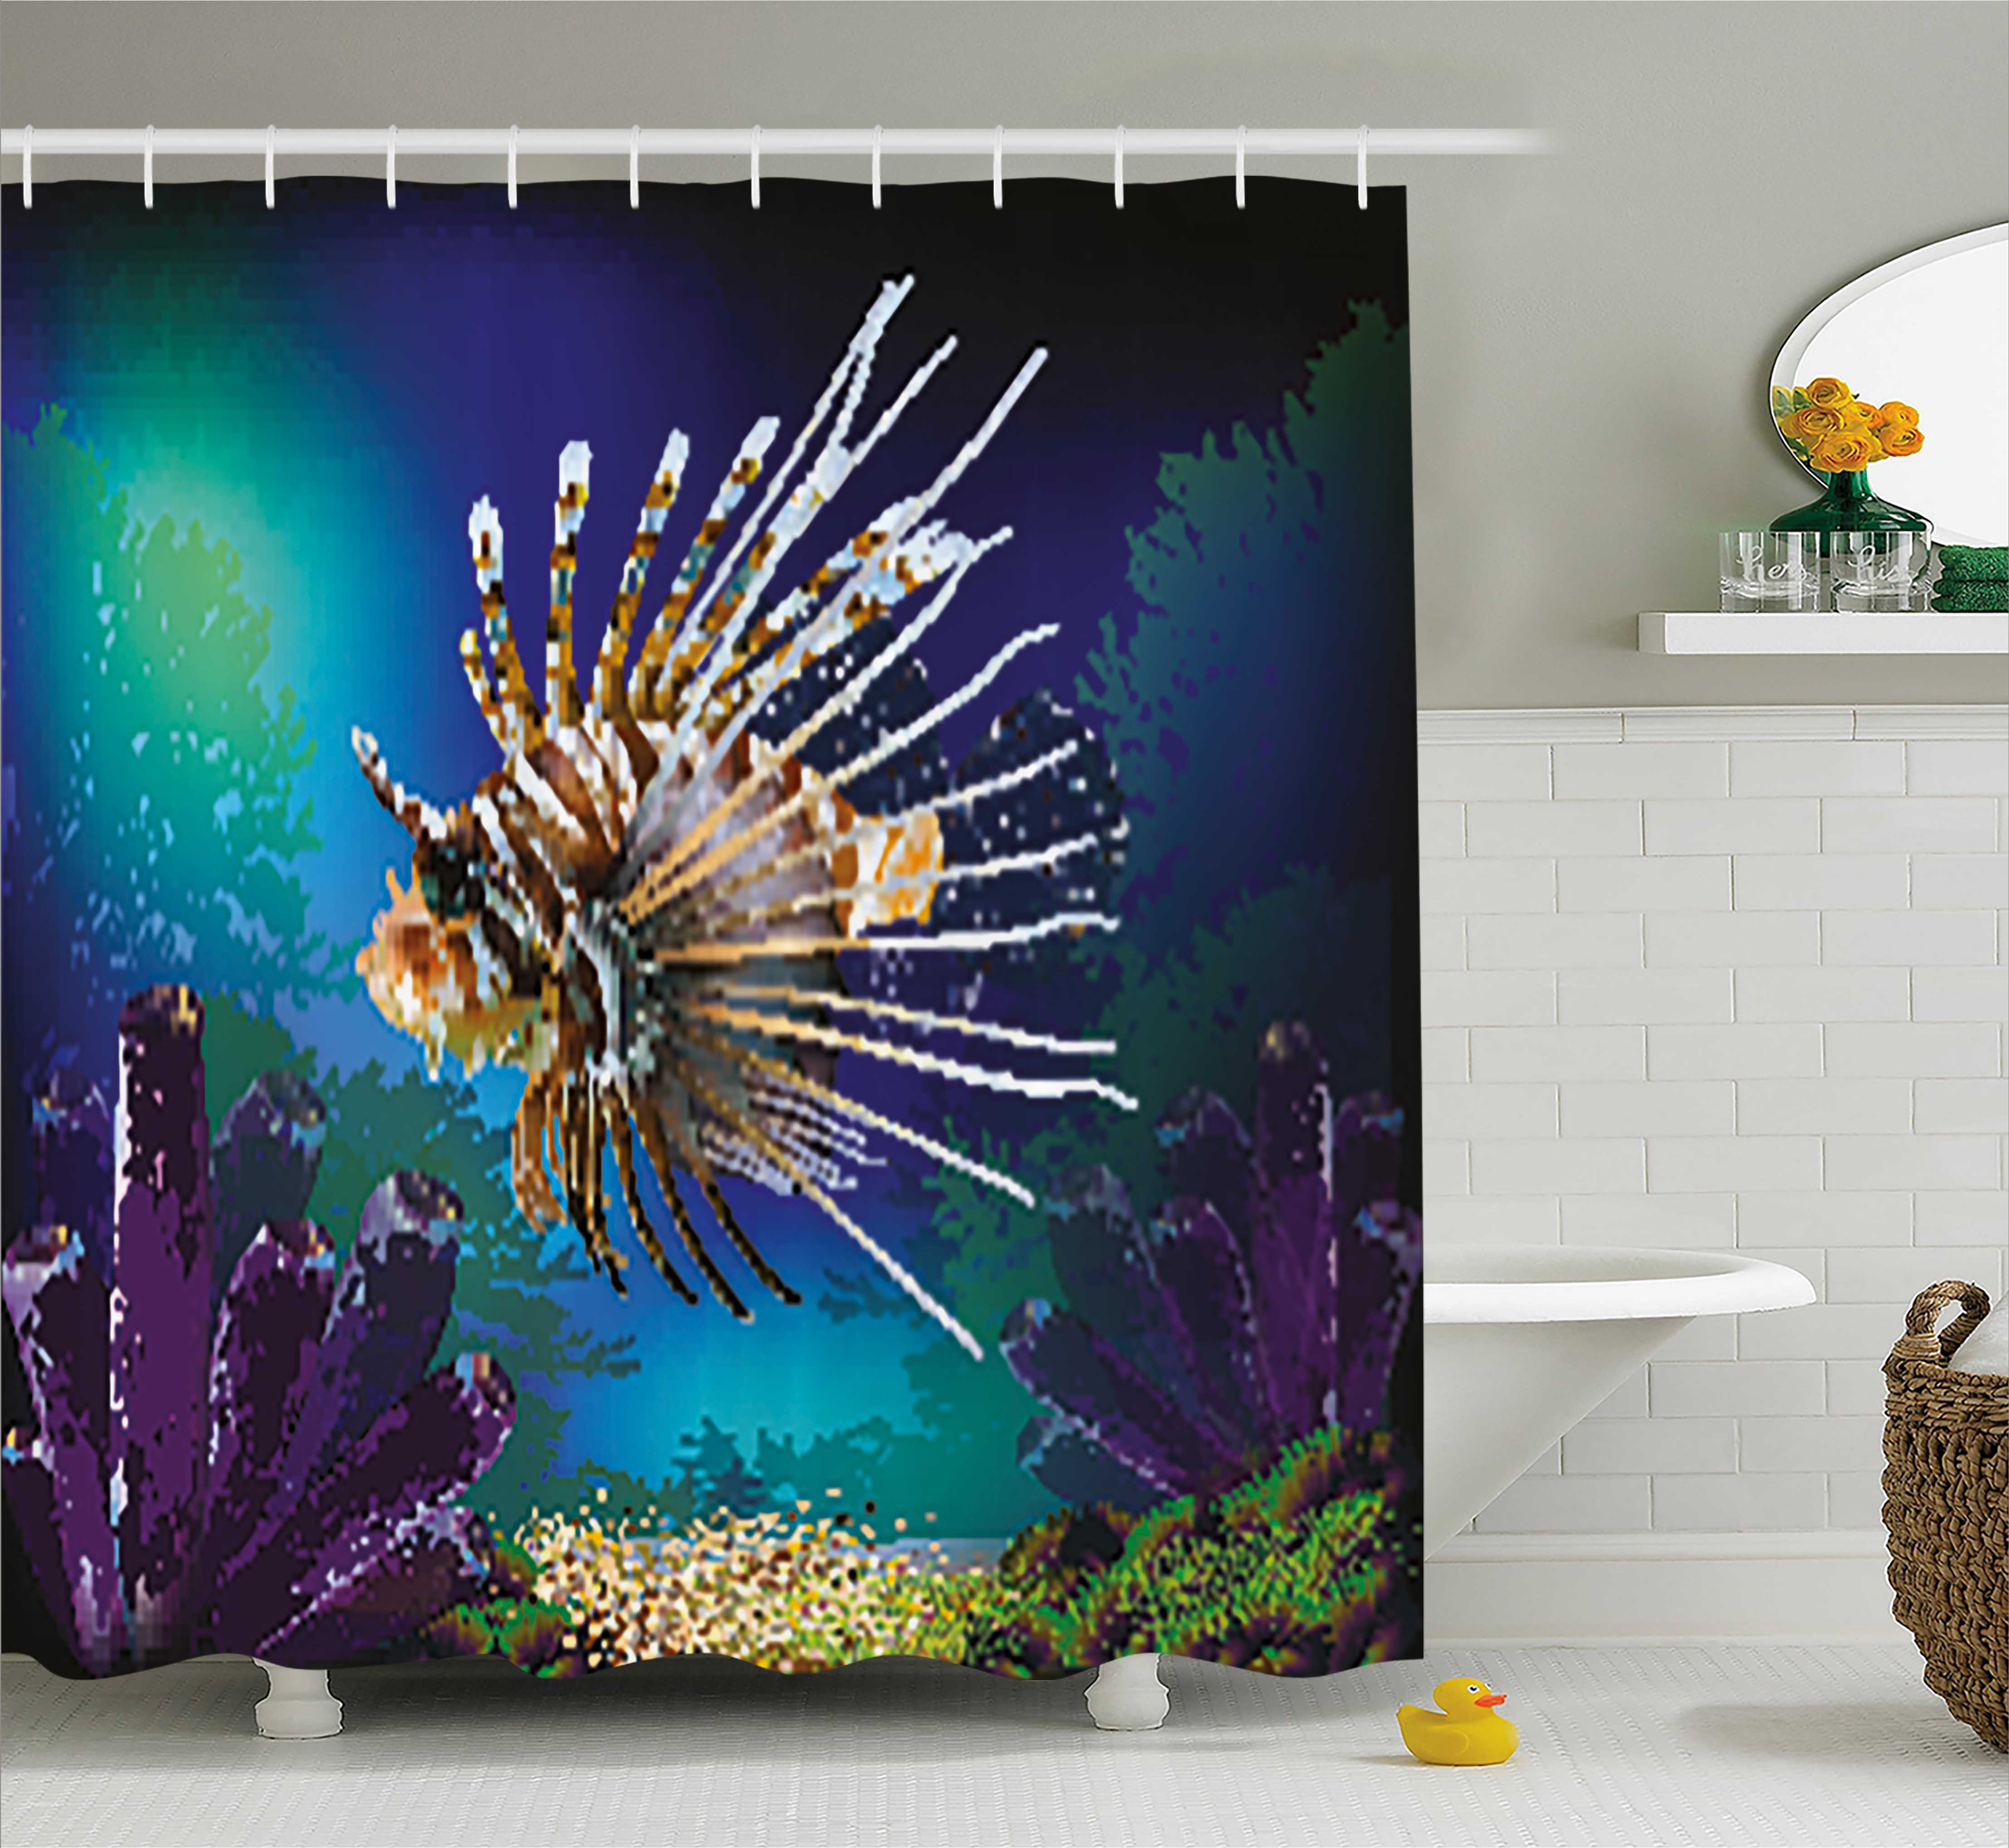 Ocean Shower Curtain, Underwater World Exotic Bubble Fish and Plants Nautical Theme Illustration, Fabric Bathroom Set with Hooks, 69W X 84L Inches Extra Long, Blue Brown Purple, by Ambesonne